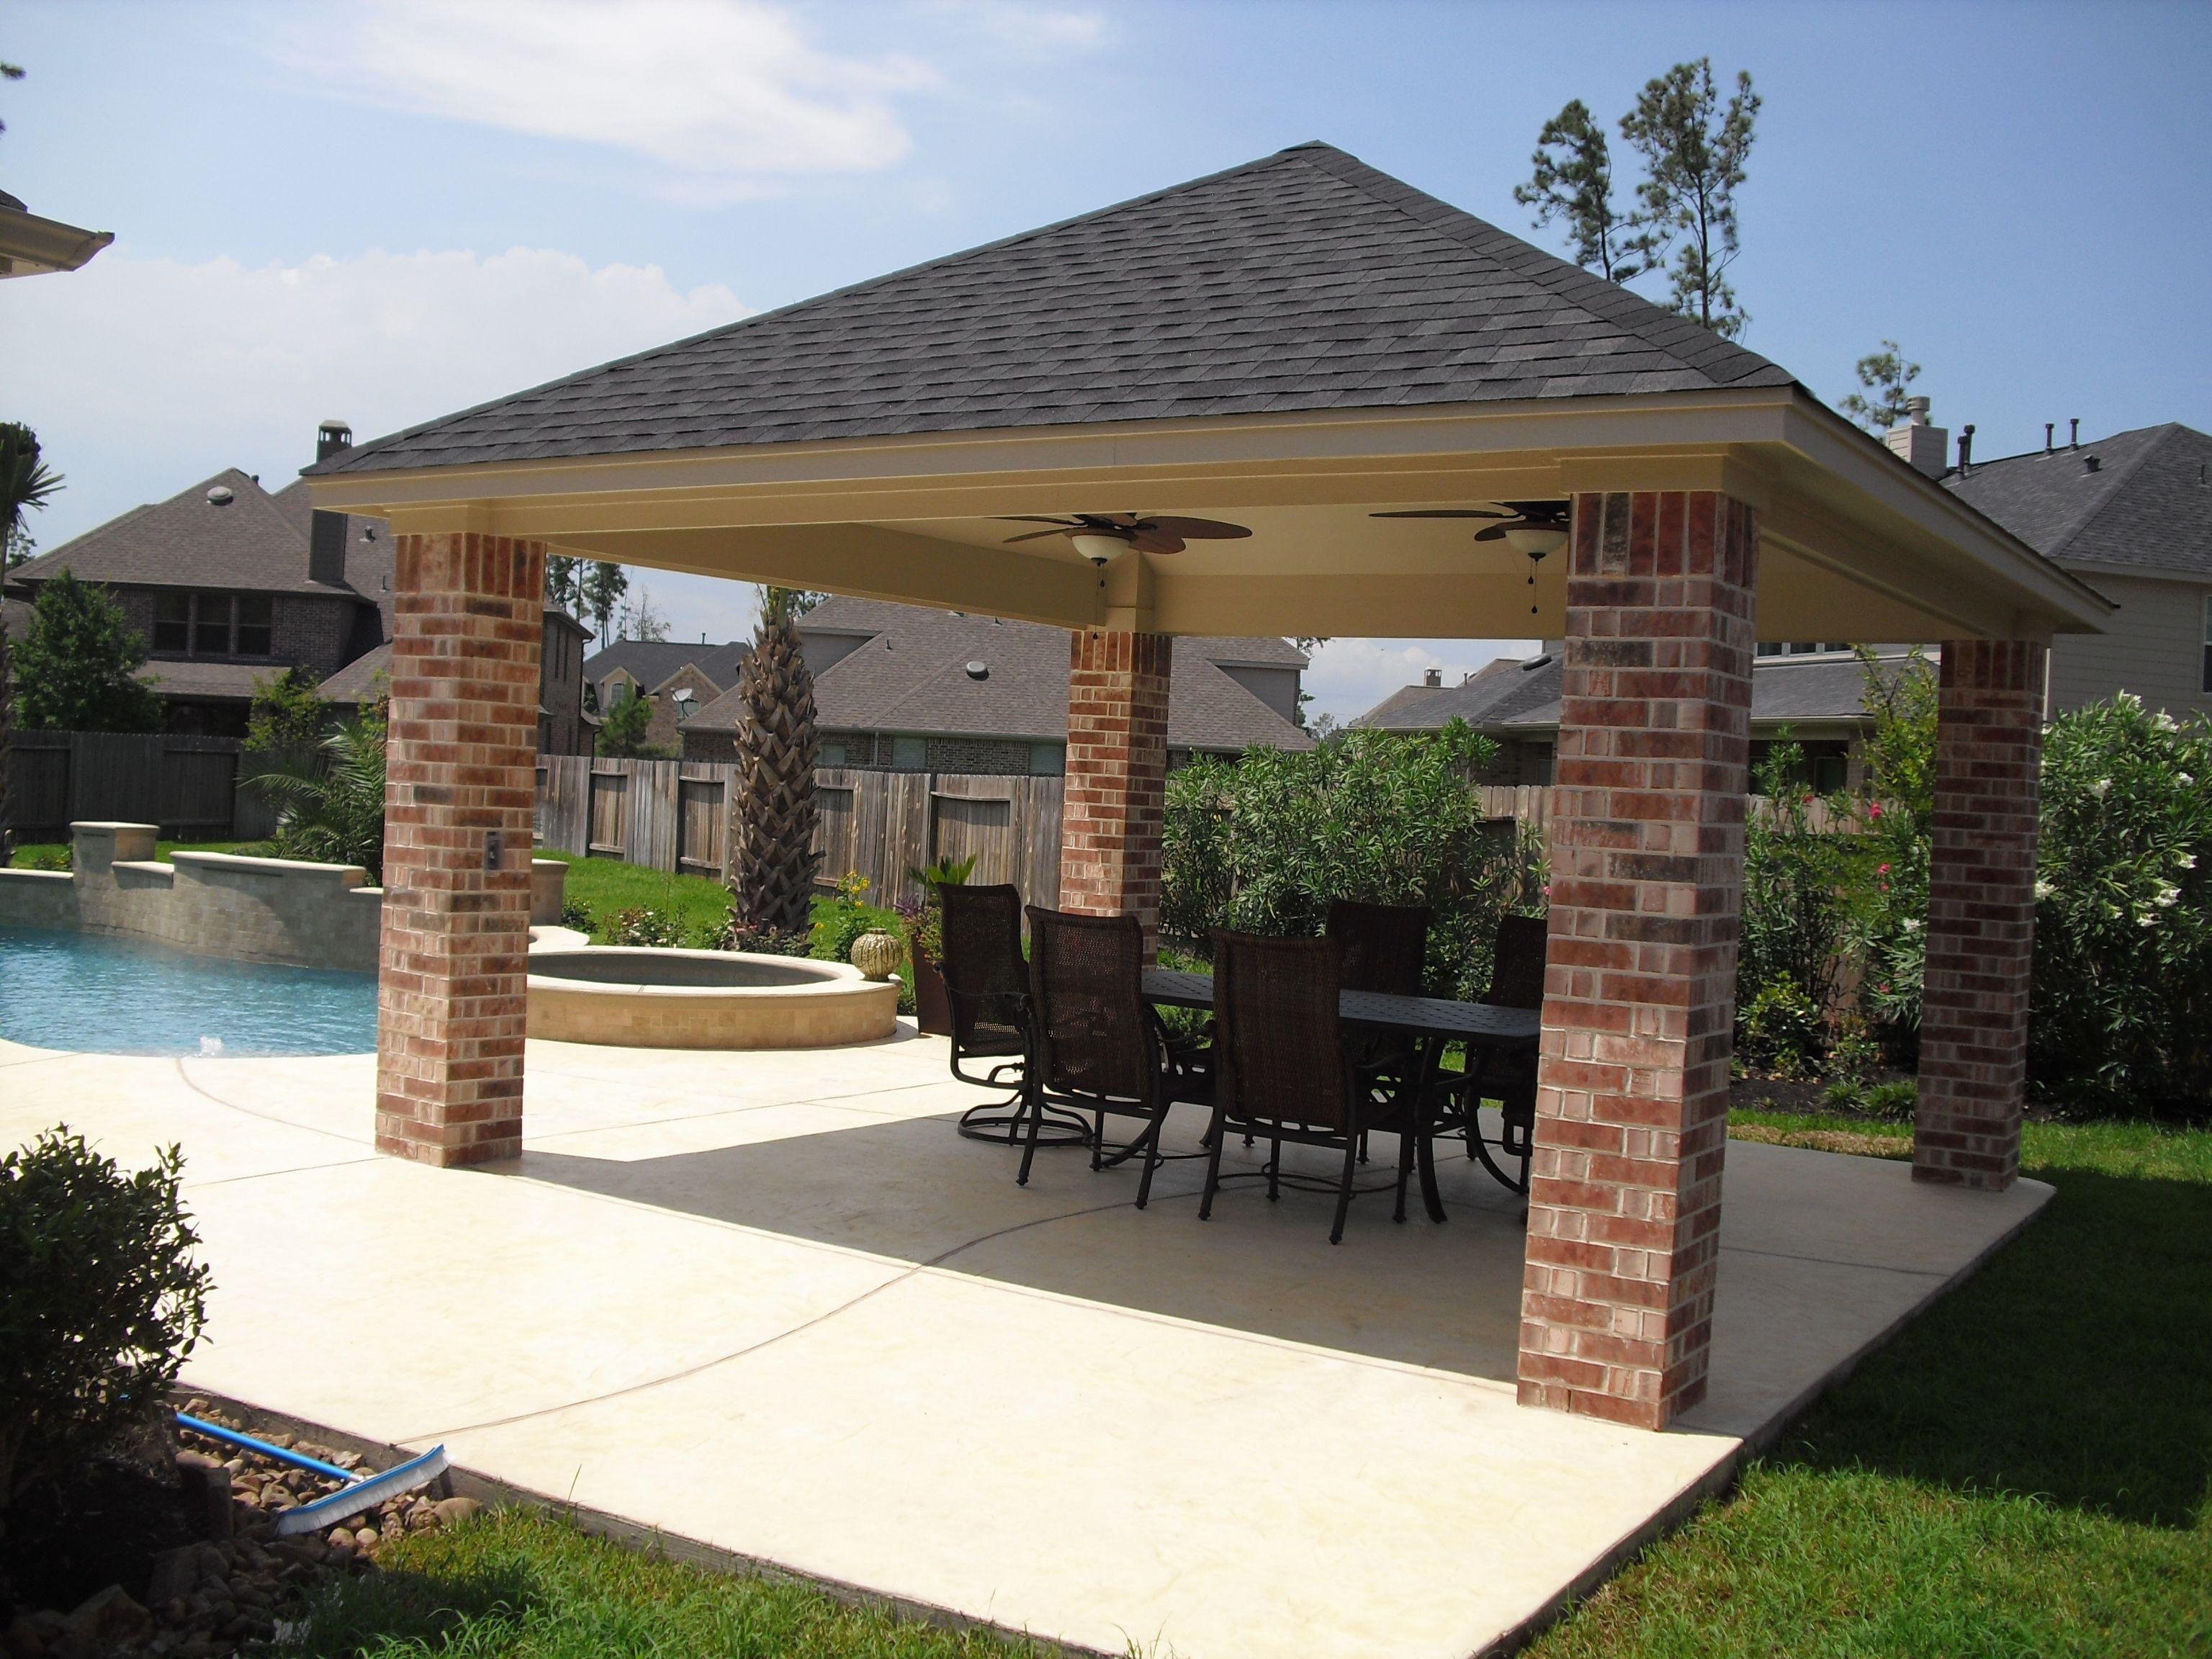 90 How To Find Backyard Porch Ideas On A Budget Patio Makeover for Backyard Porch Ideas